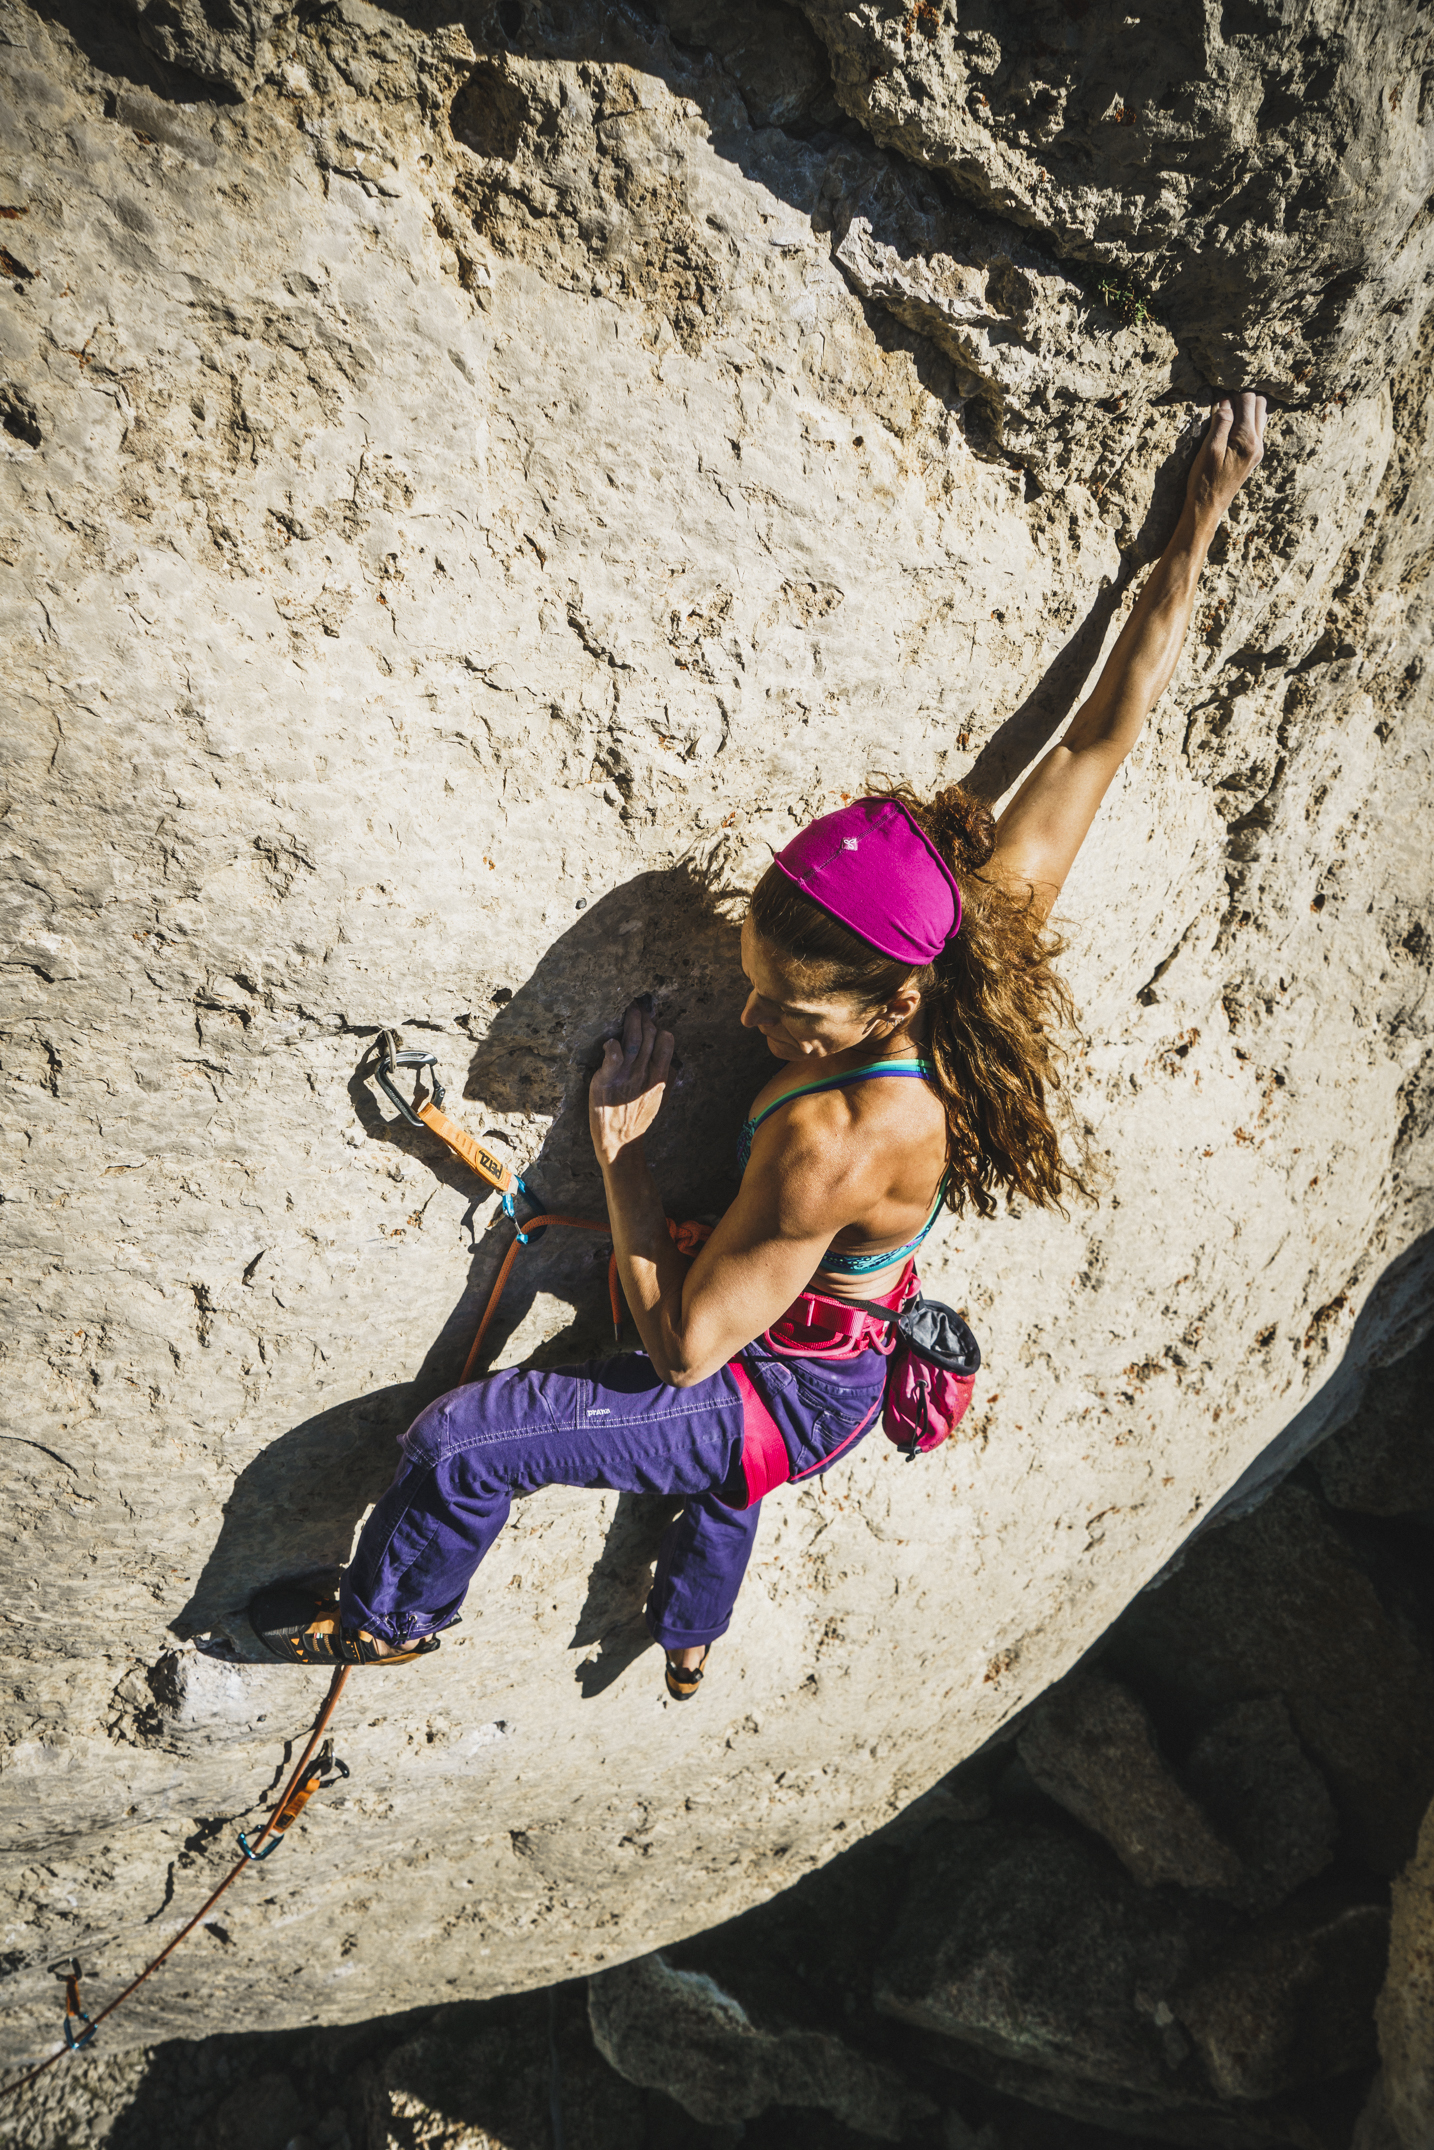 Crusher Alli Rainey works Last Man Standing, 5.13a, Wild Iris, Wyoming © Louis Arvevalo